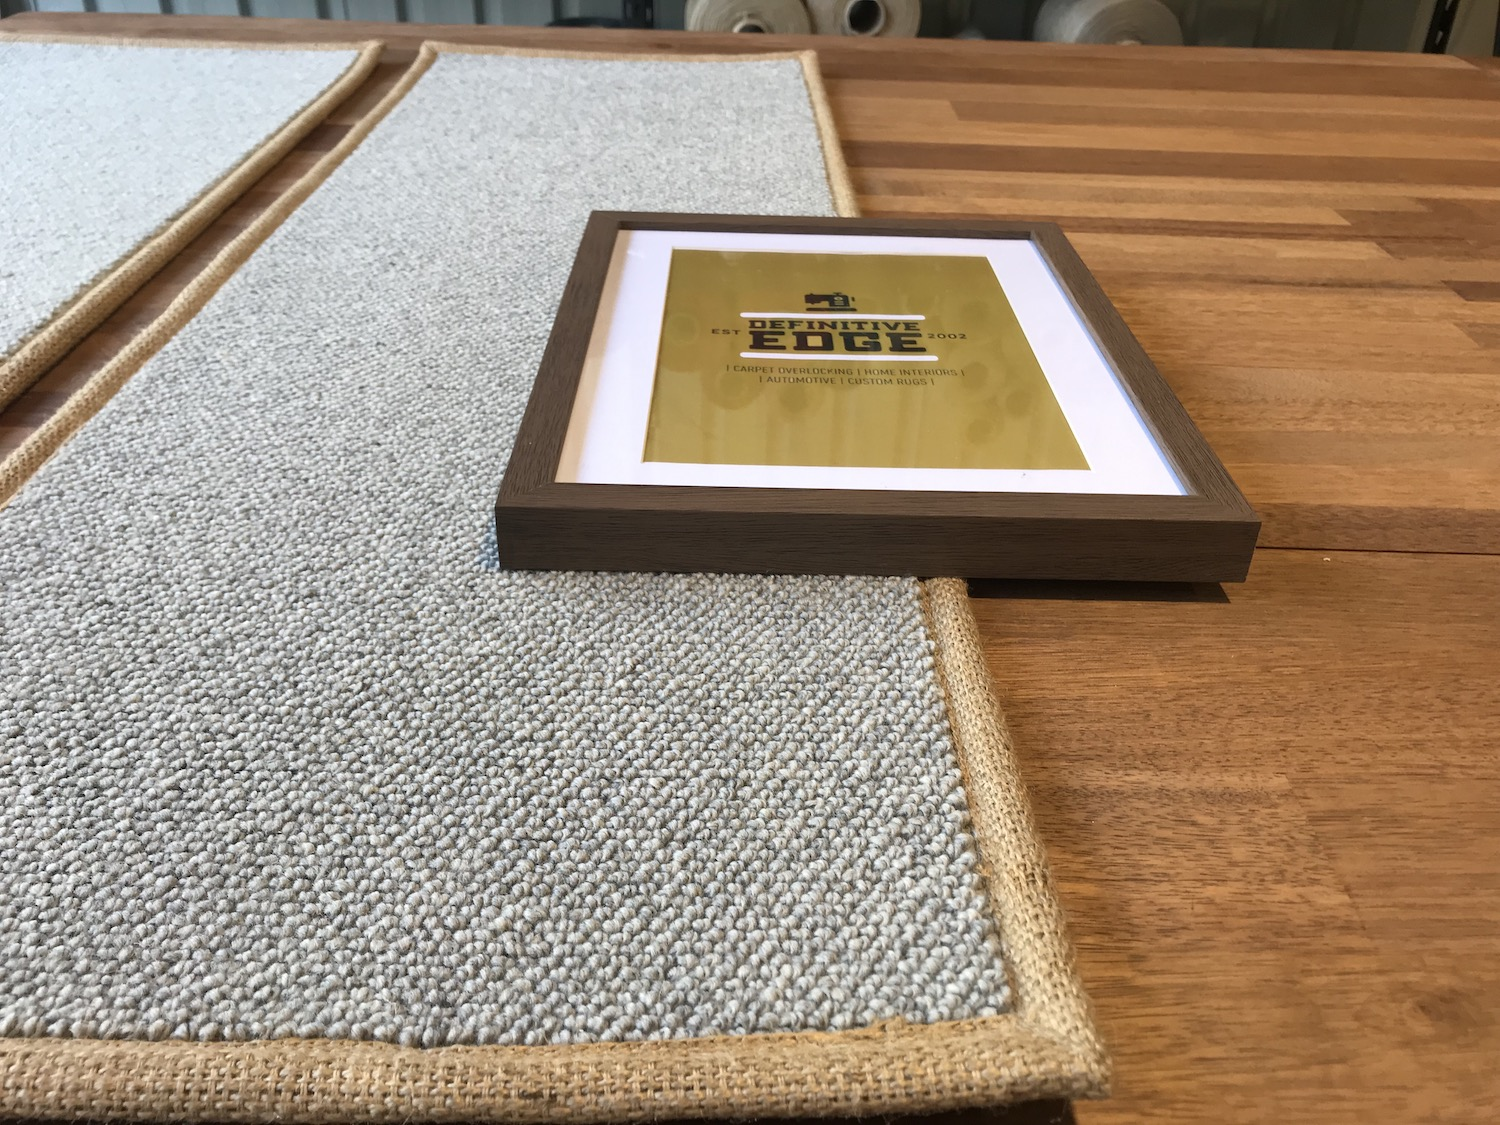 Definitive Edge Half-Width Tape Binding in JUTE